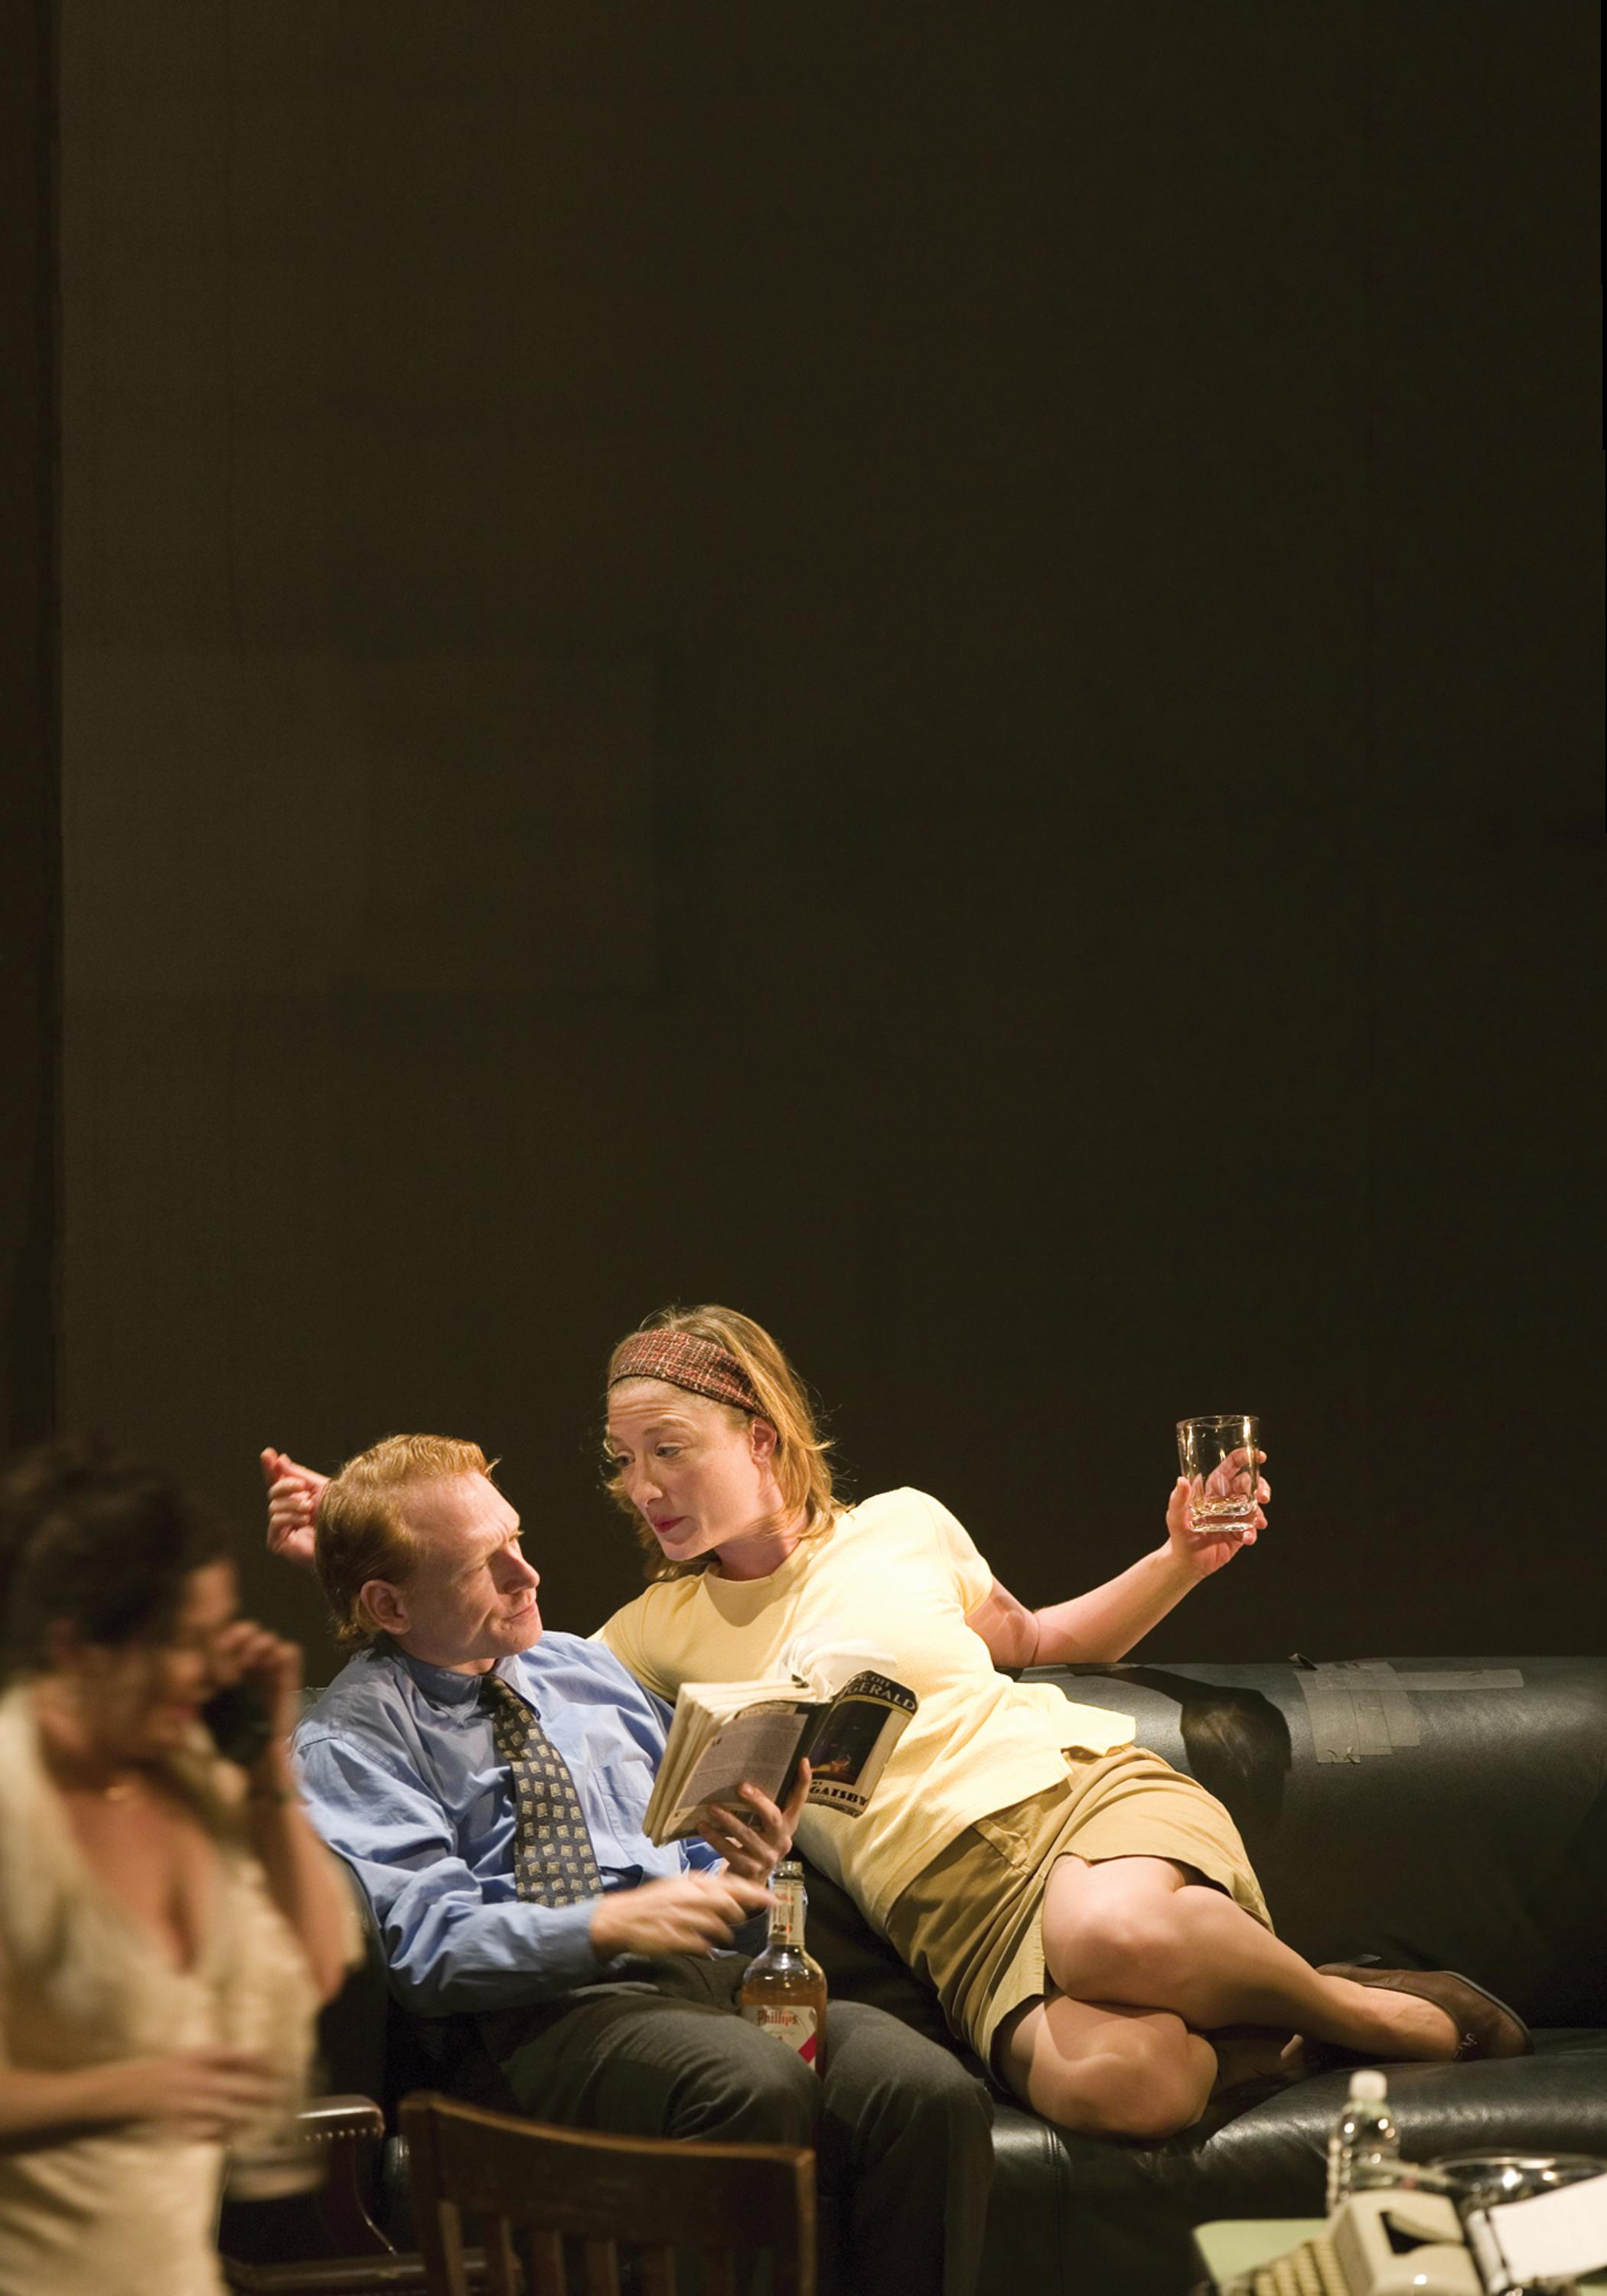 A woman and man lounge on a worn black leather couch, holding drinks and a bottle of liquor. The woman leans into the man while he reads a book. A blurred image of another woman is visible in the foreground, walking and talking on a mobile phone.